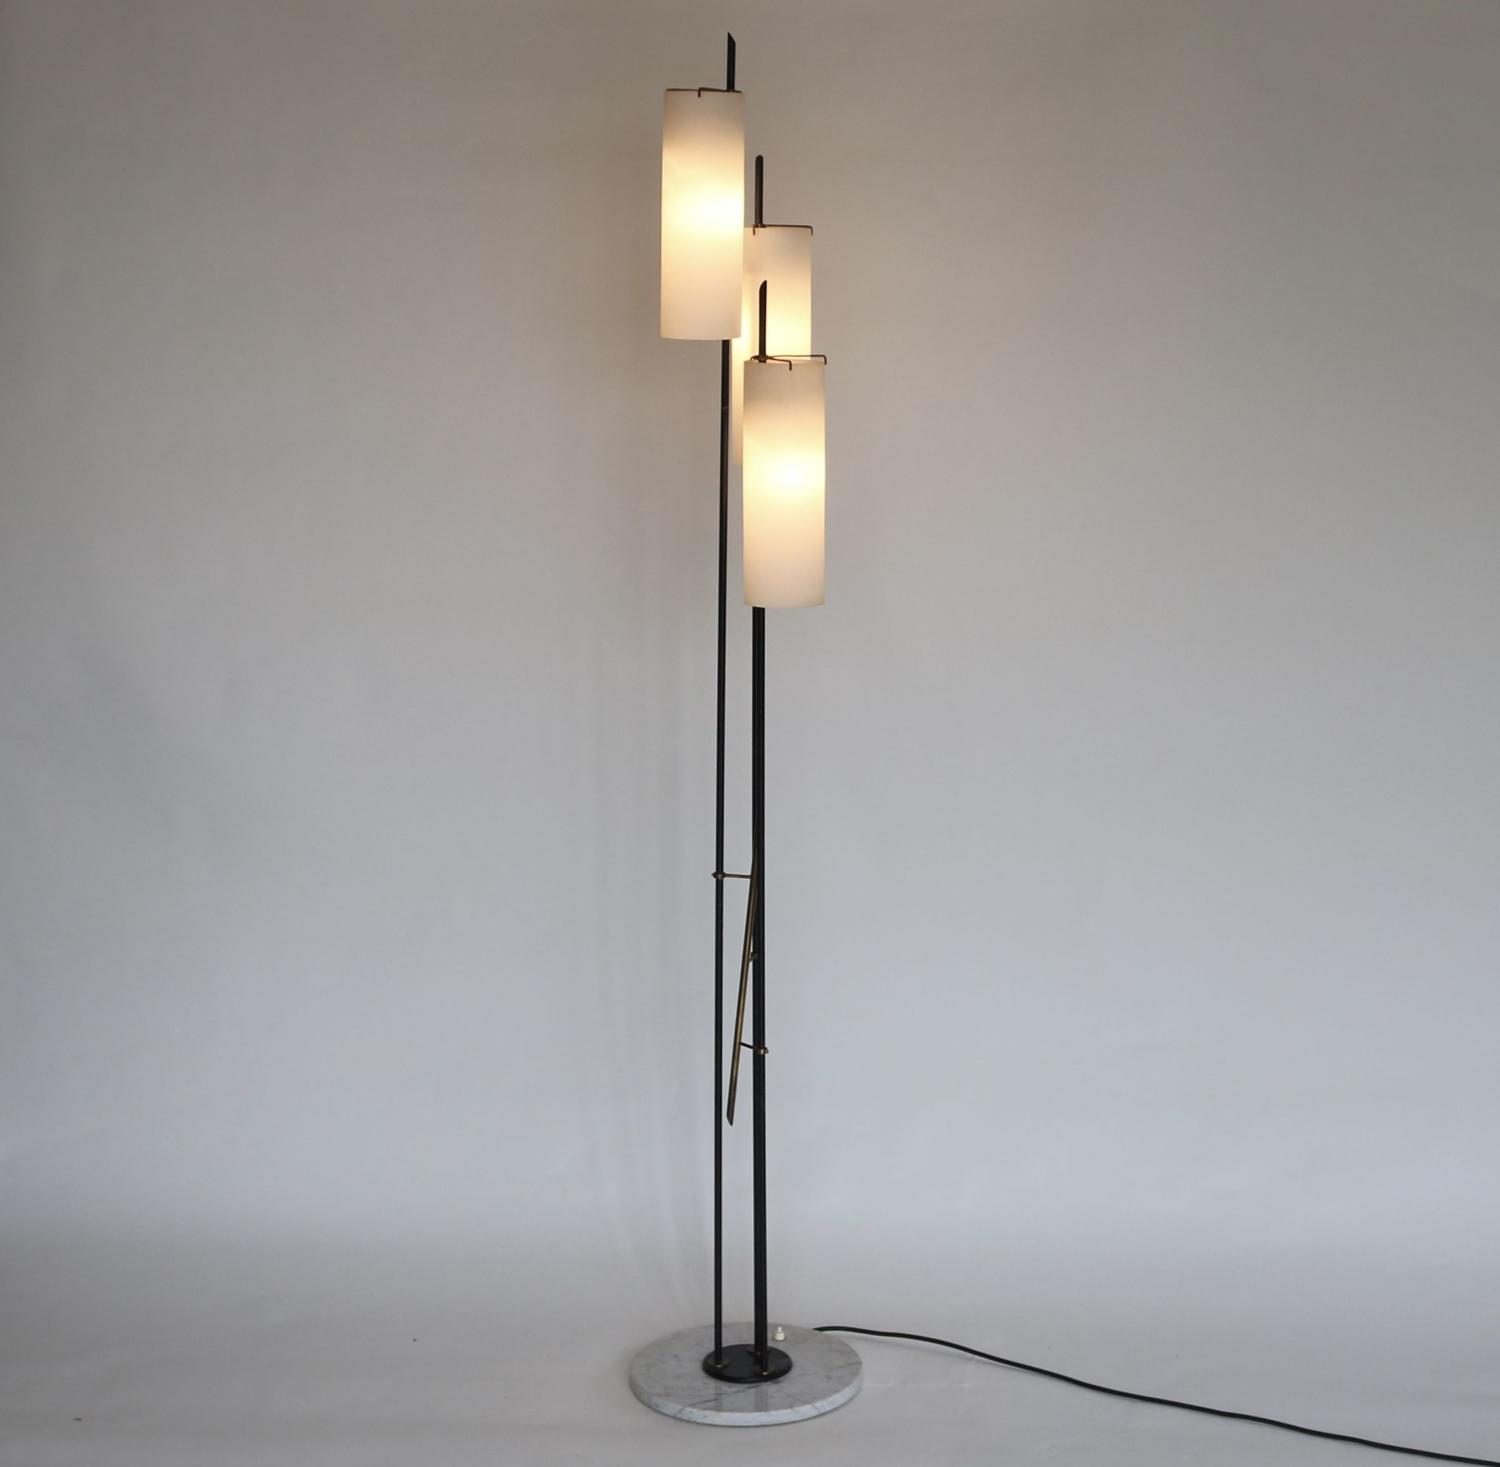 Italian 1950's Floor Lamp by Stilnovo